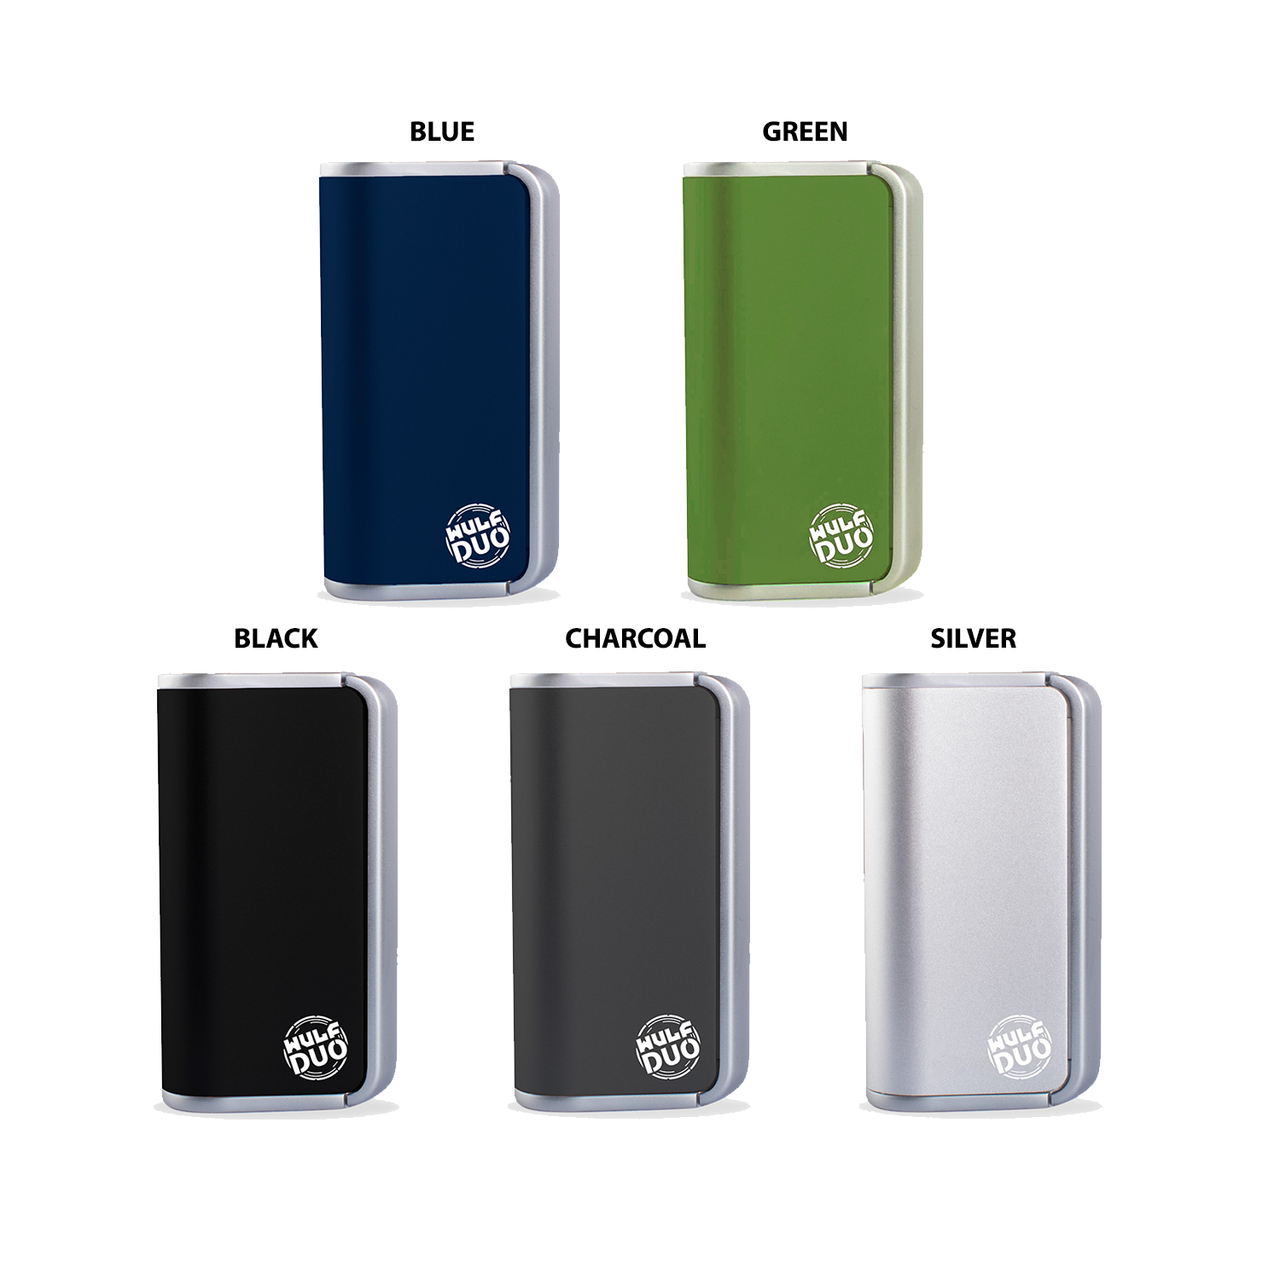 Wulf Wulf - Duo 2 In 1 Cartridge Vaporizer